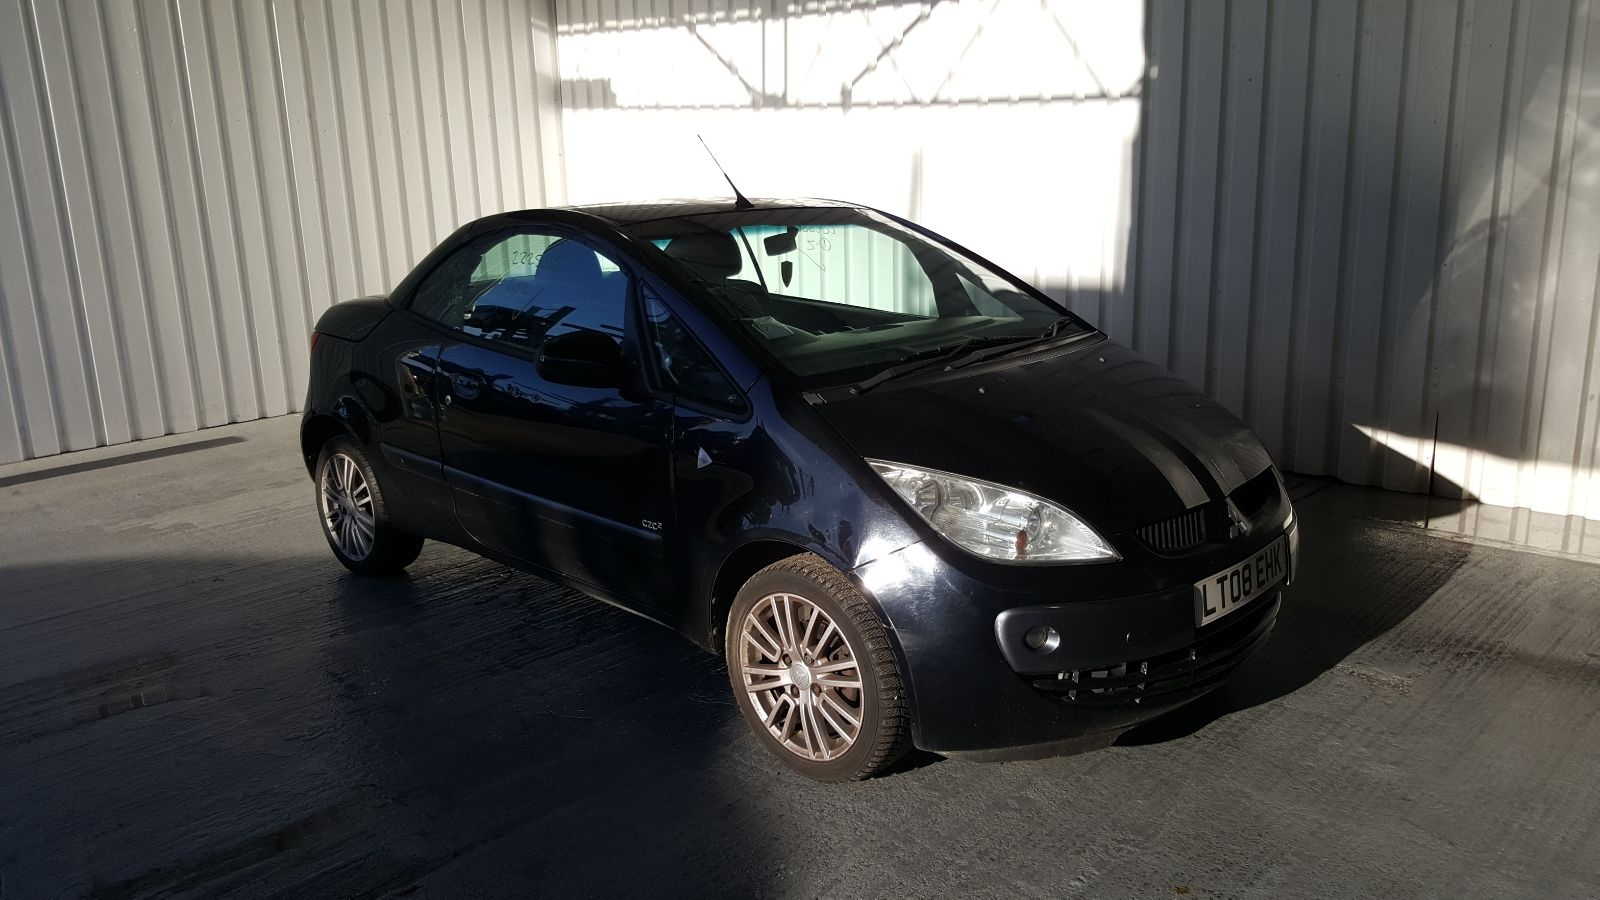 Image for a Mitsubishi Colt Czc 2008 2 Door Bodystyle Convertable